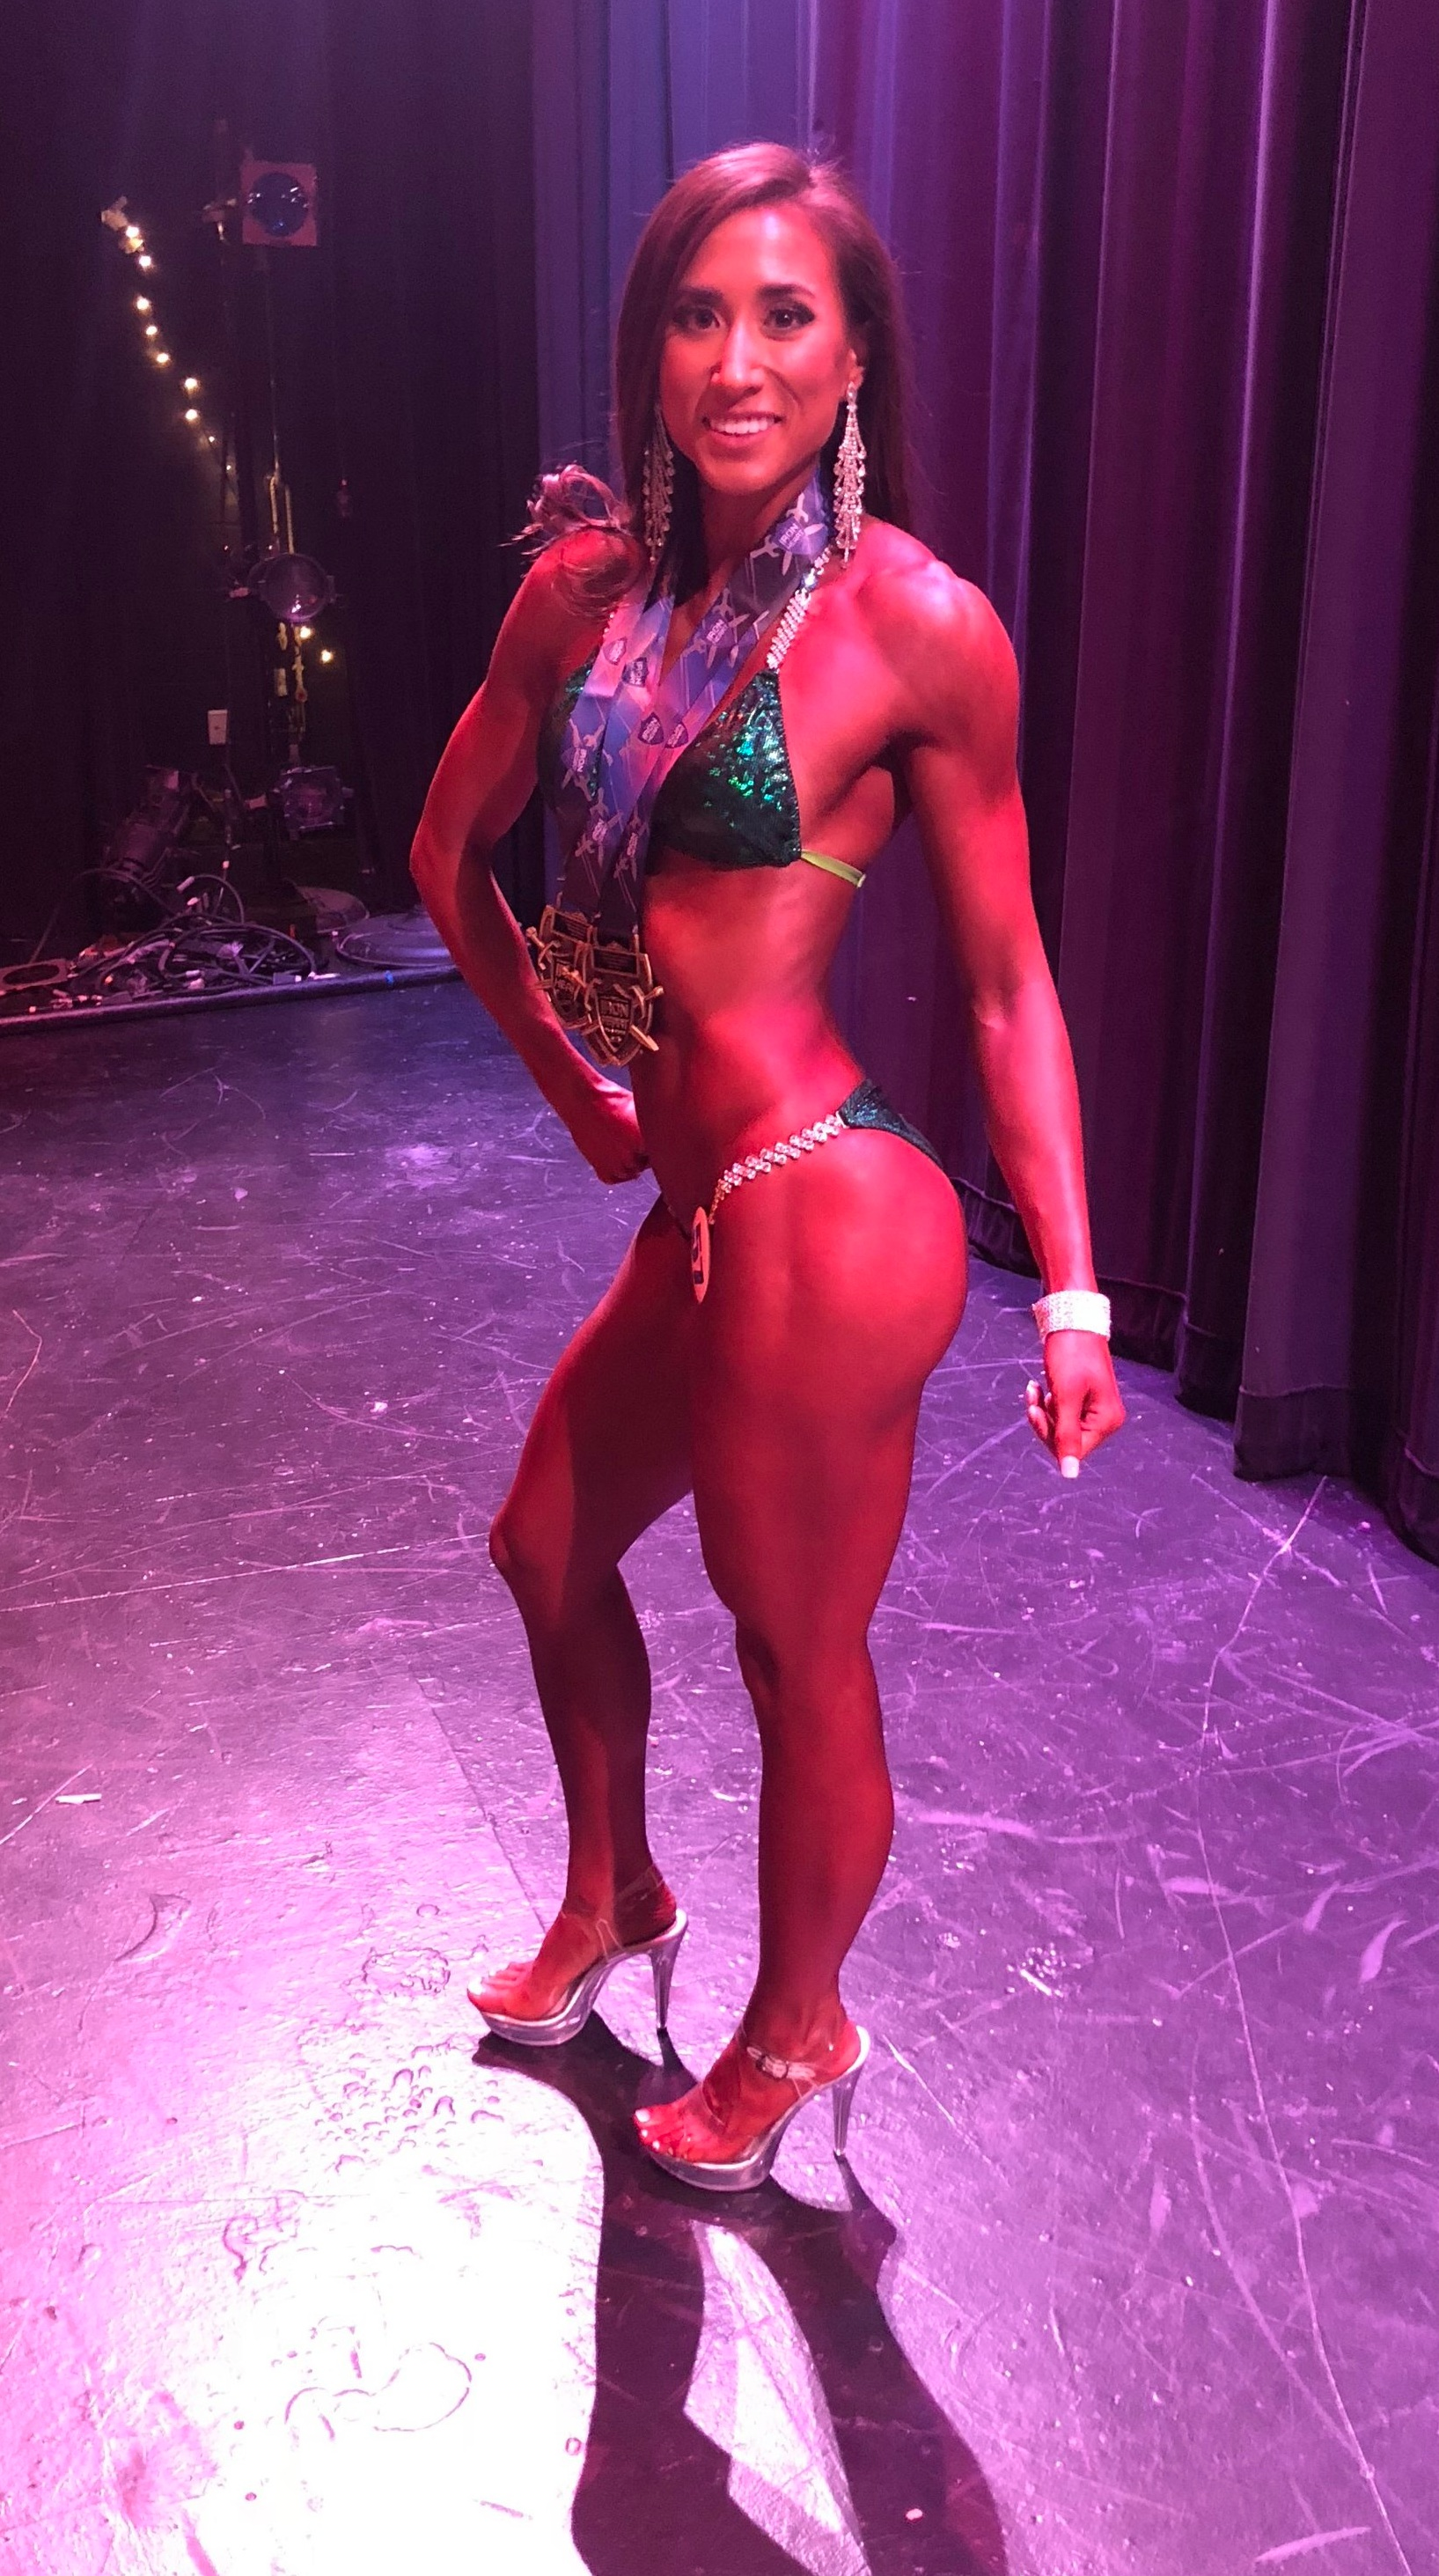 Qualifying for Nationals at my first NPC Bikini Show was an amazing experience.